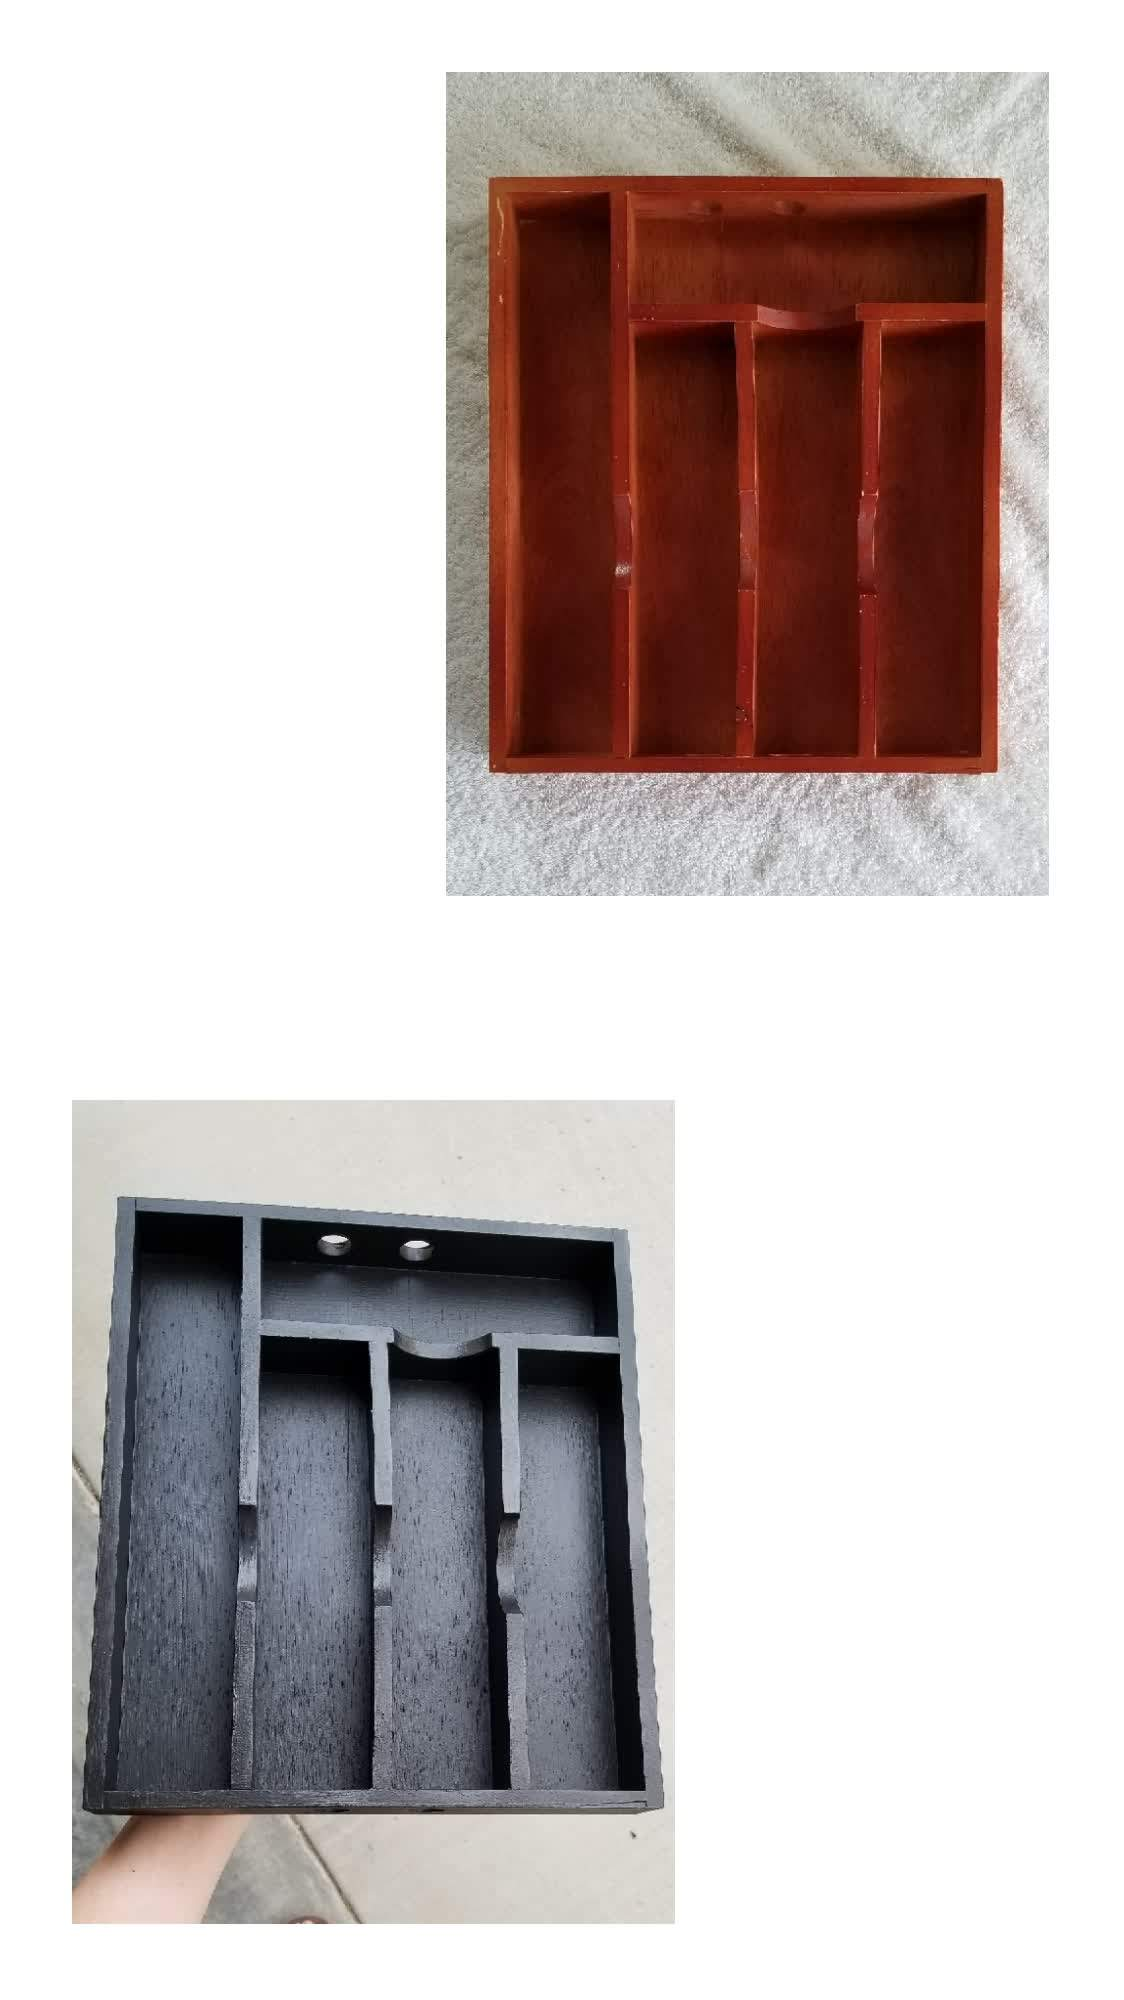 Before and after silverware holder.